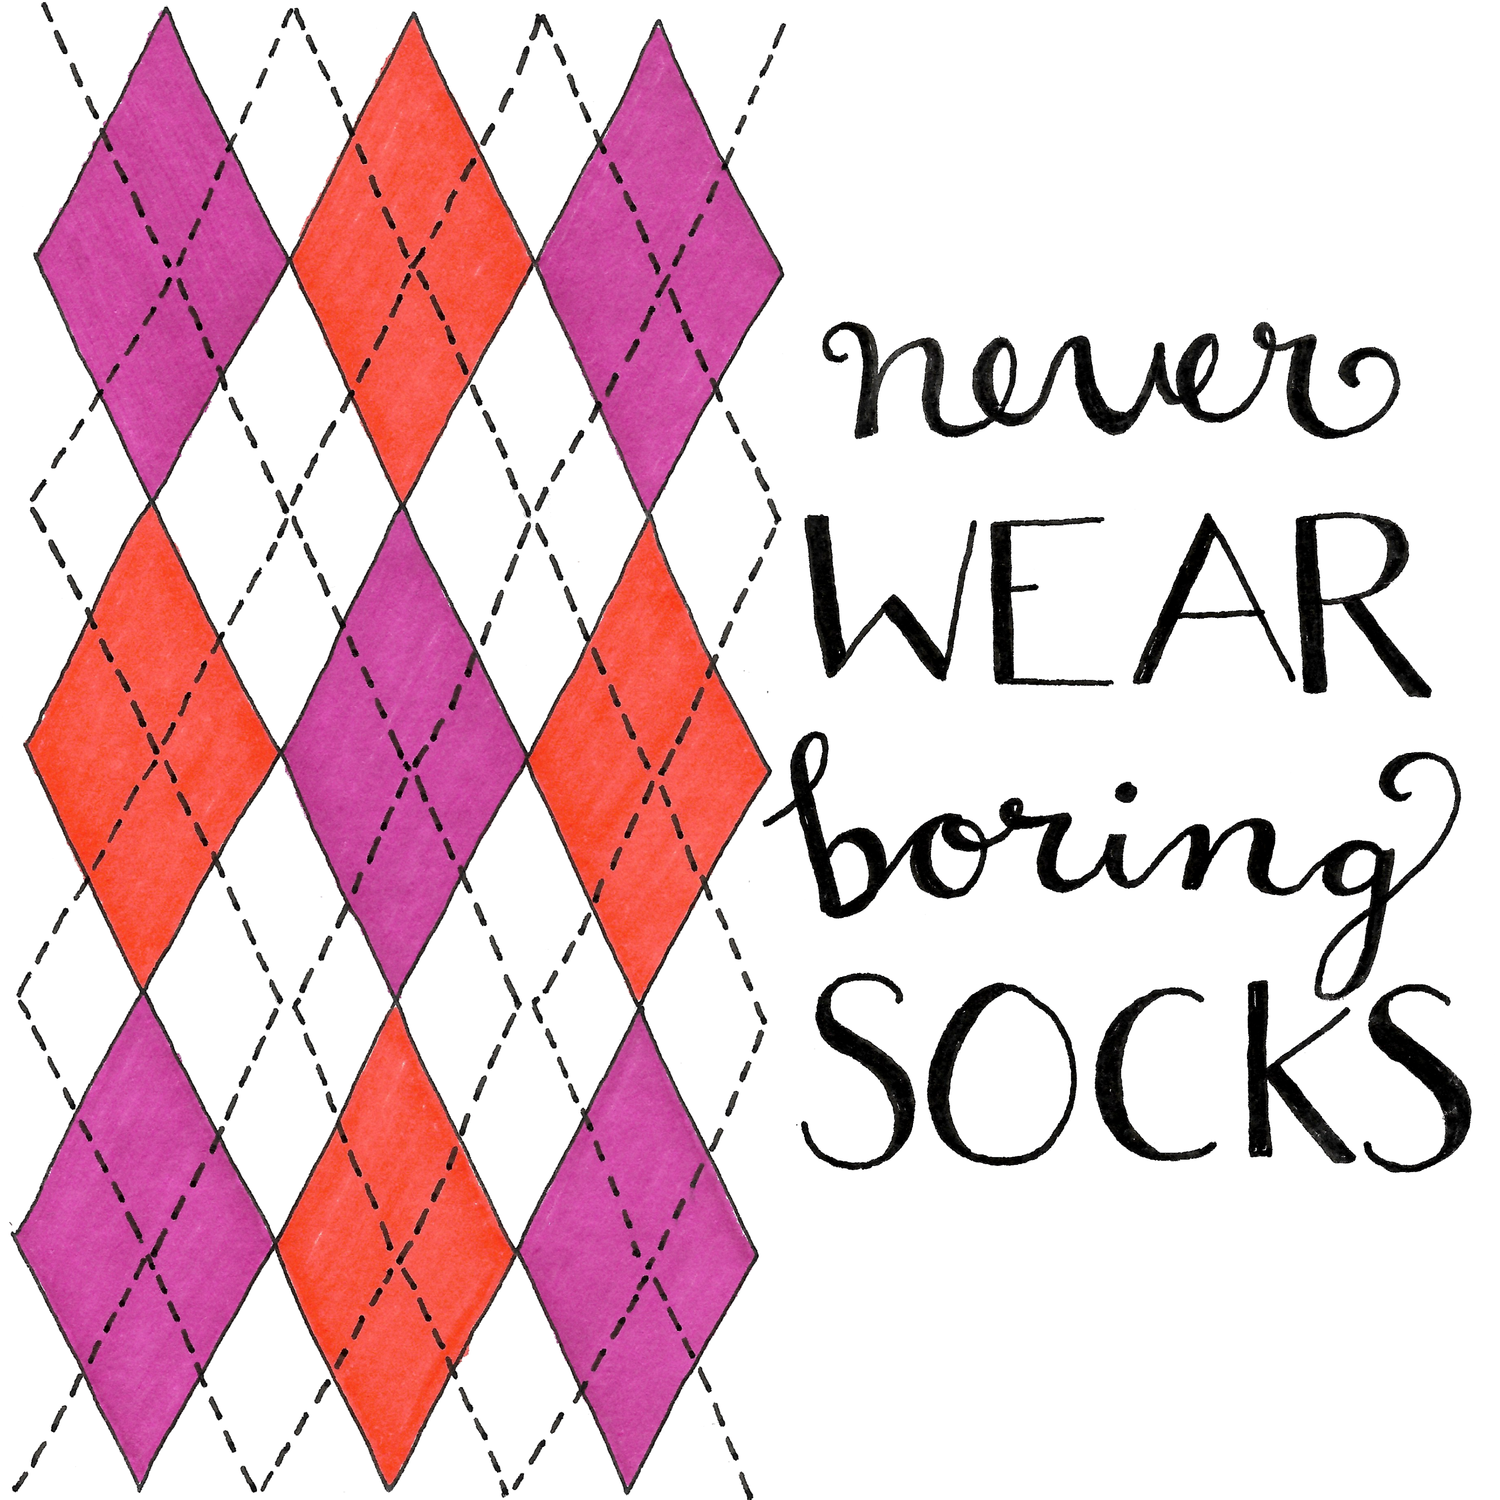 Never Wear Boring Socks